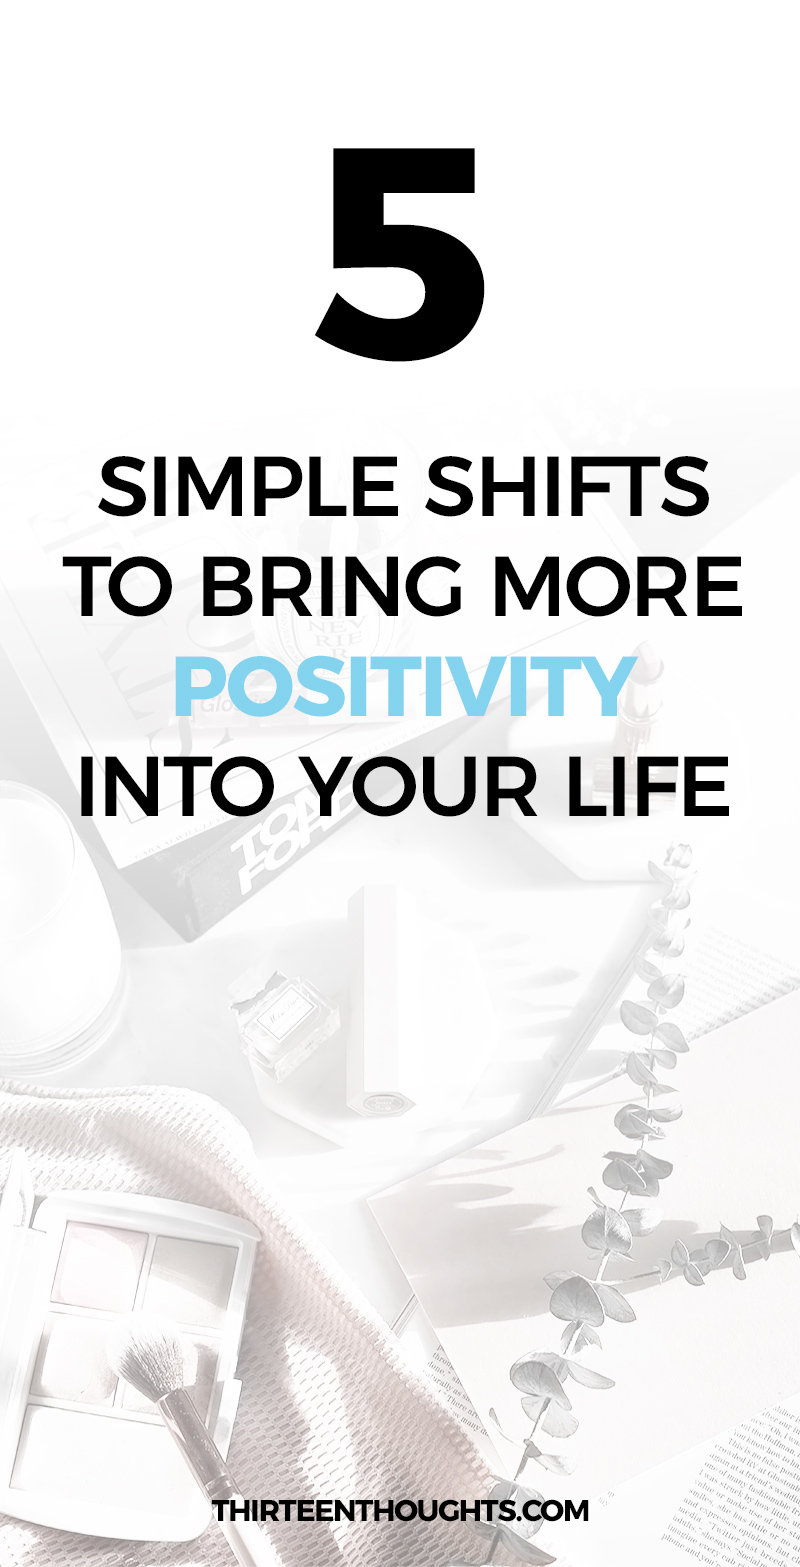 Simple Shifts to Bring More Positivity to Your Life